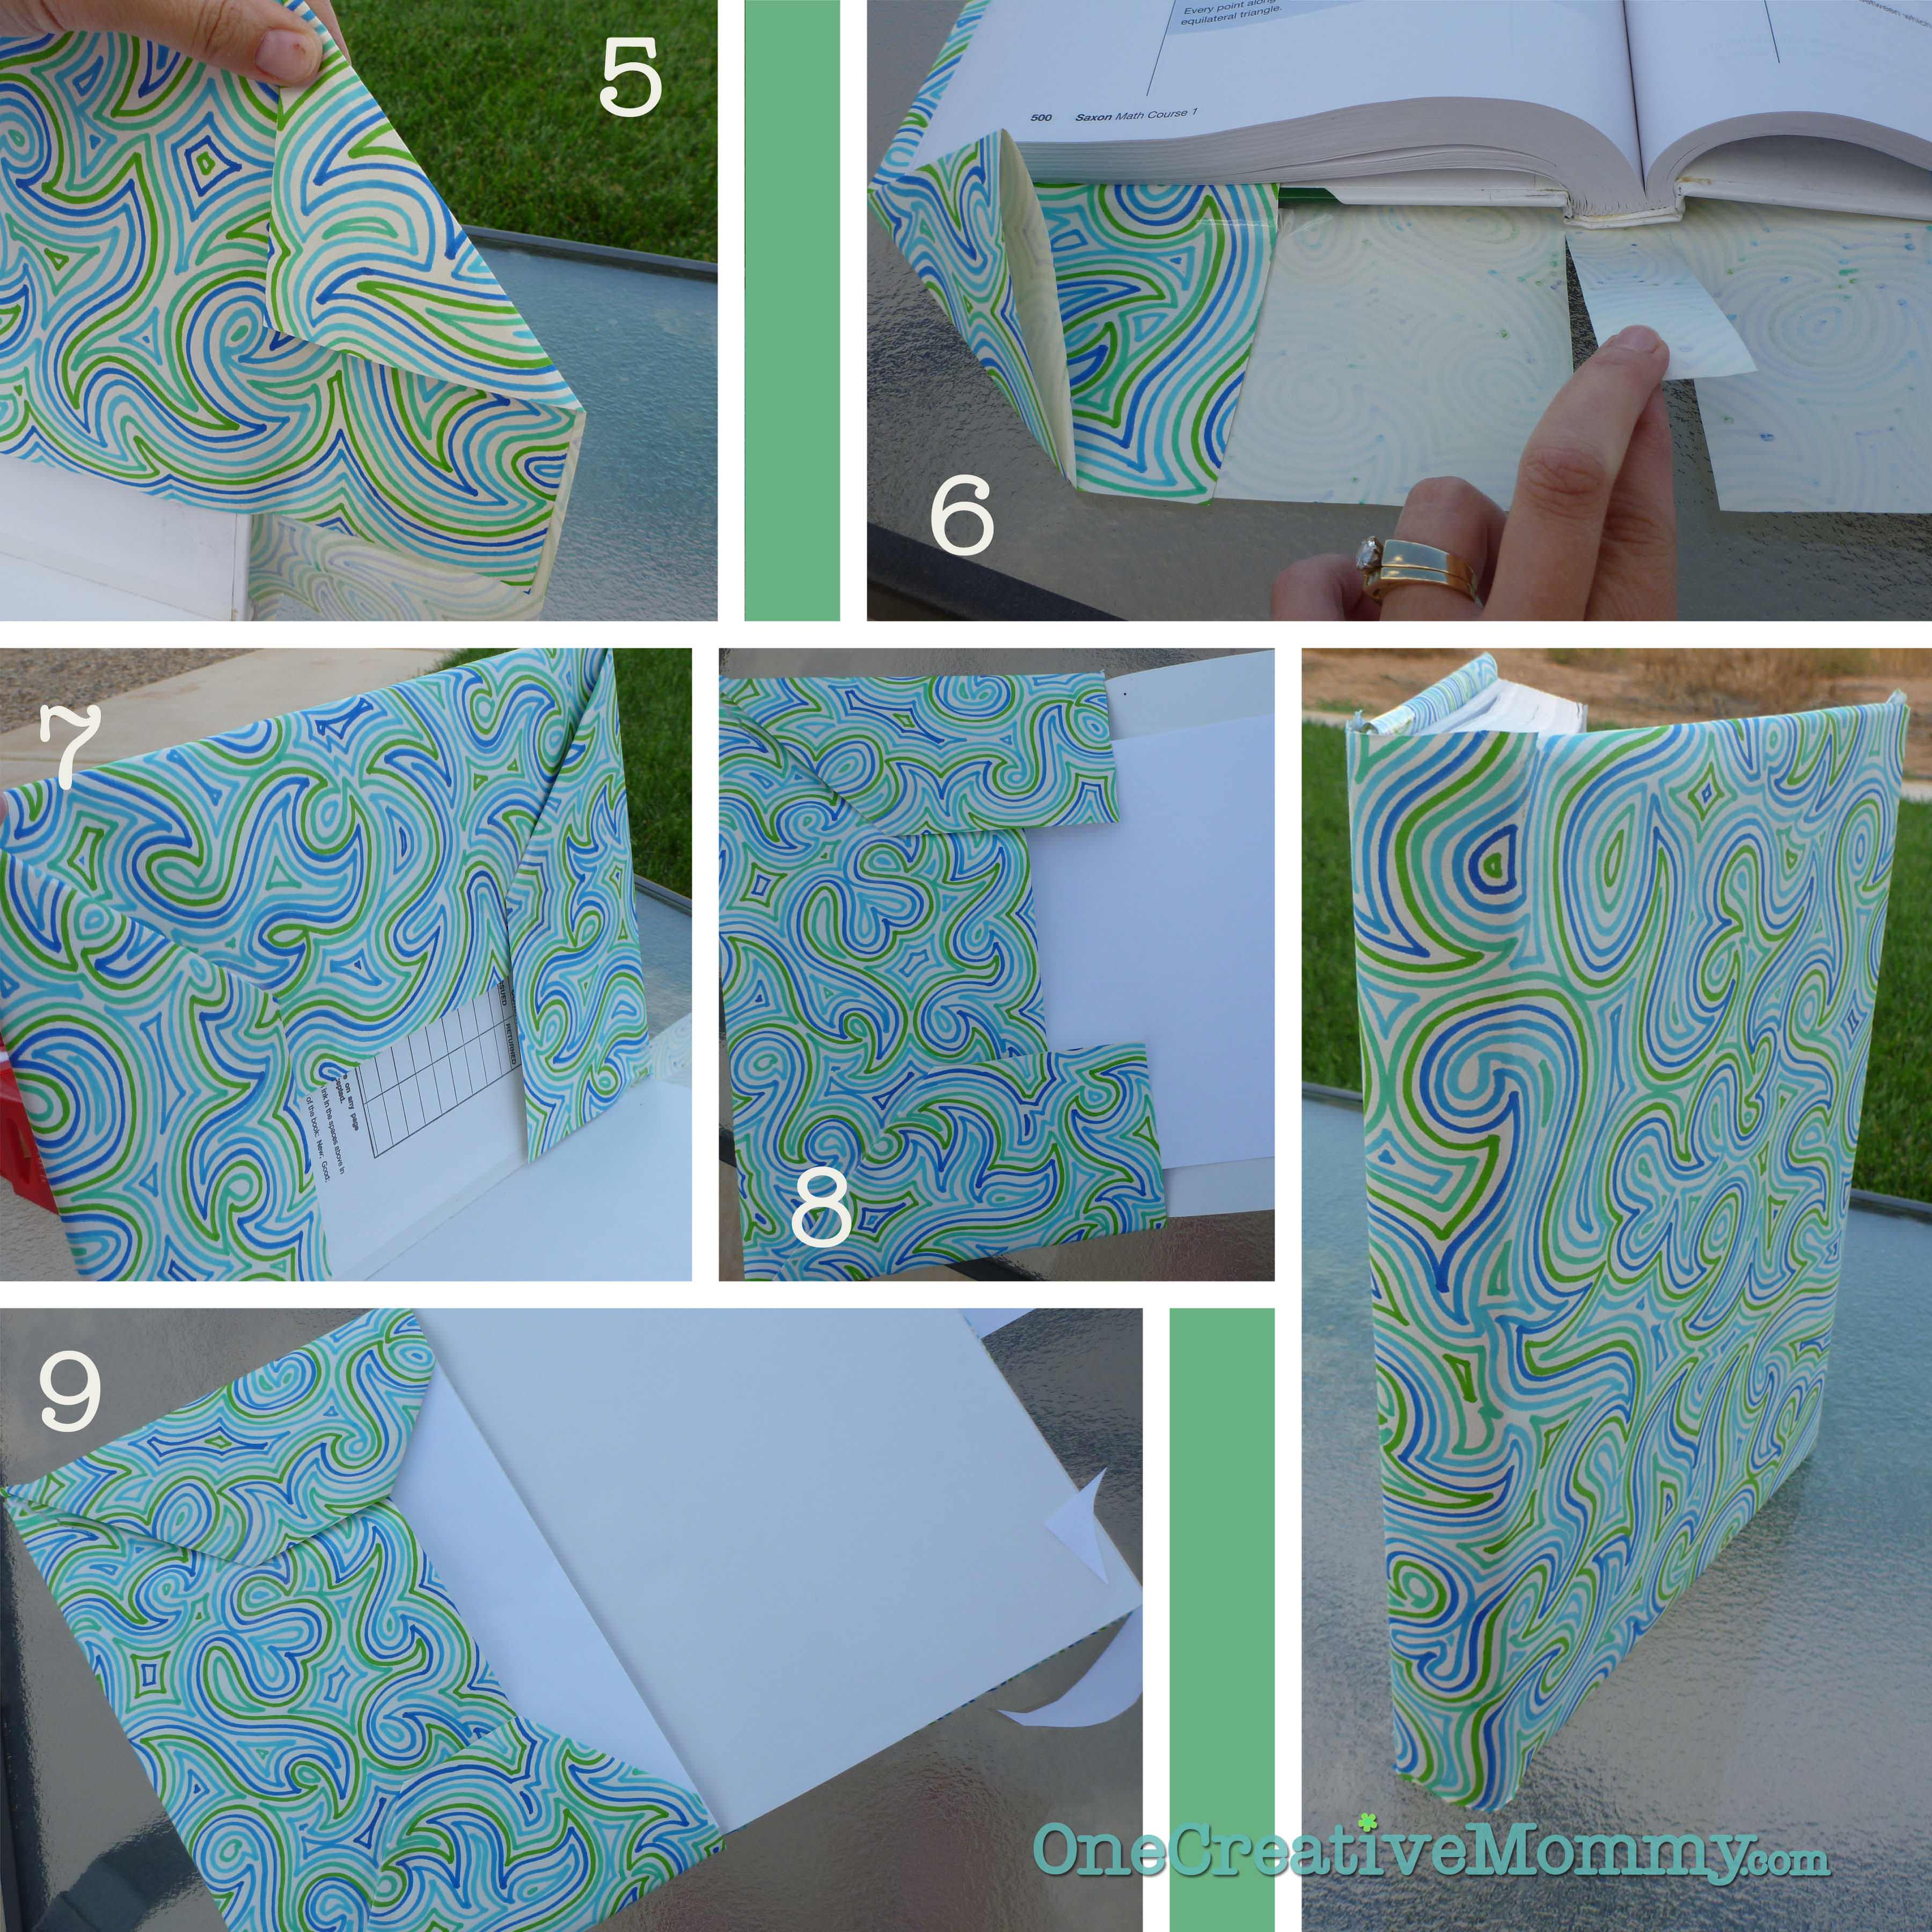 Diy Book Cover Paper Bag : Diy paper book cover onecreativemommy